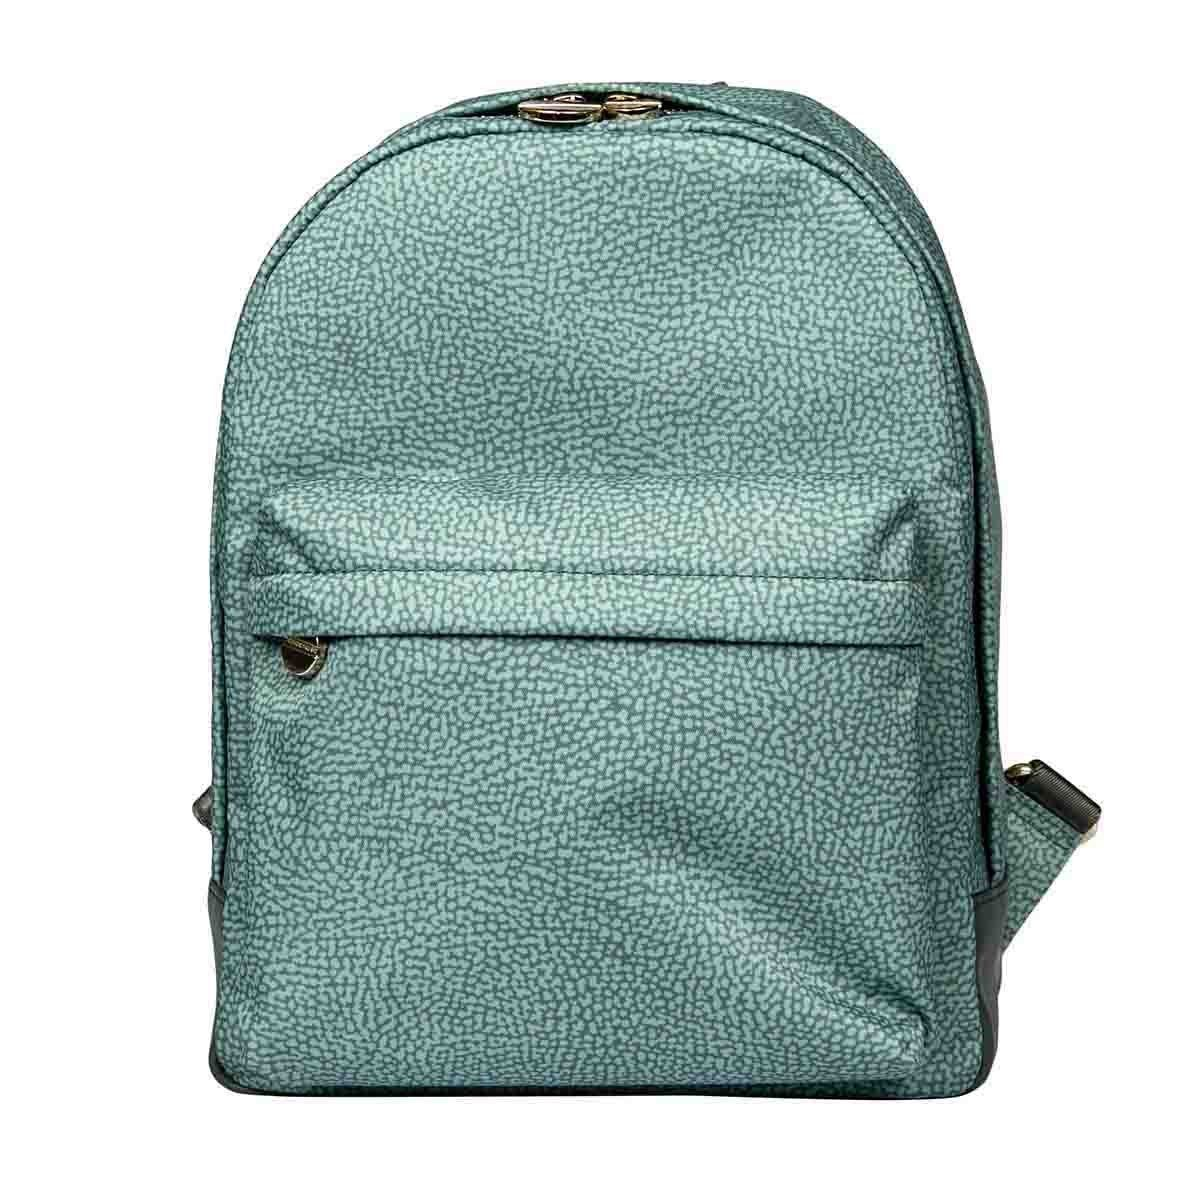 Borbonese BORBONESE WOMEN'S GREEN POLYESTER BACKPACK